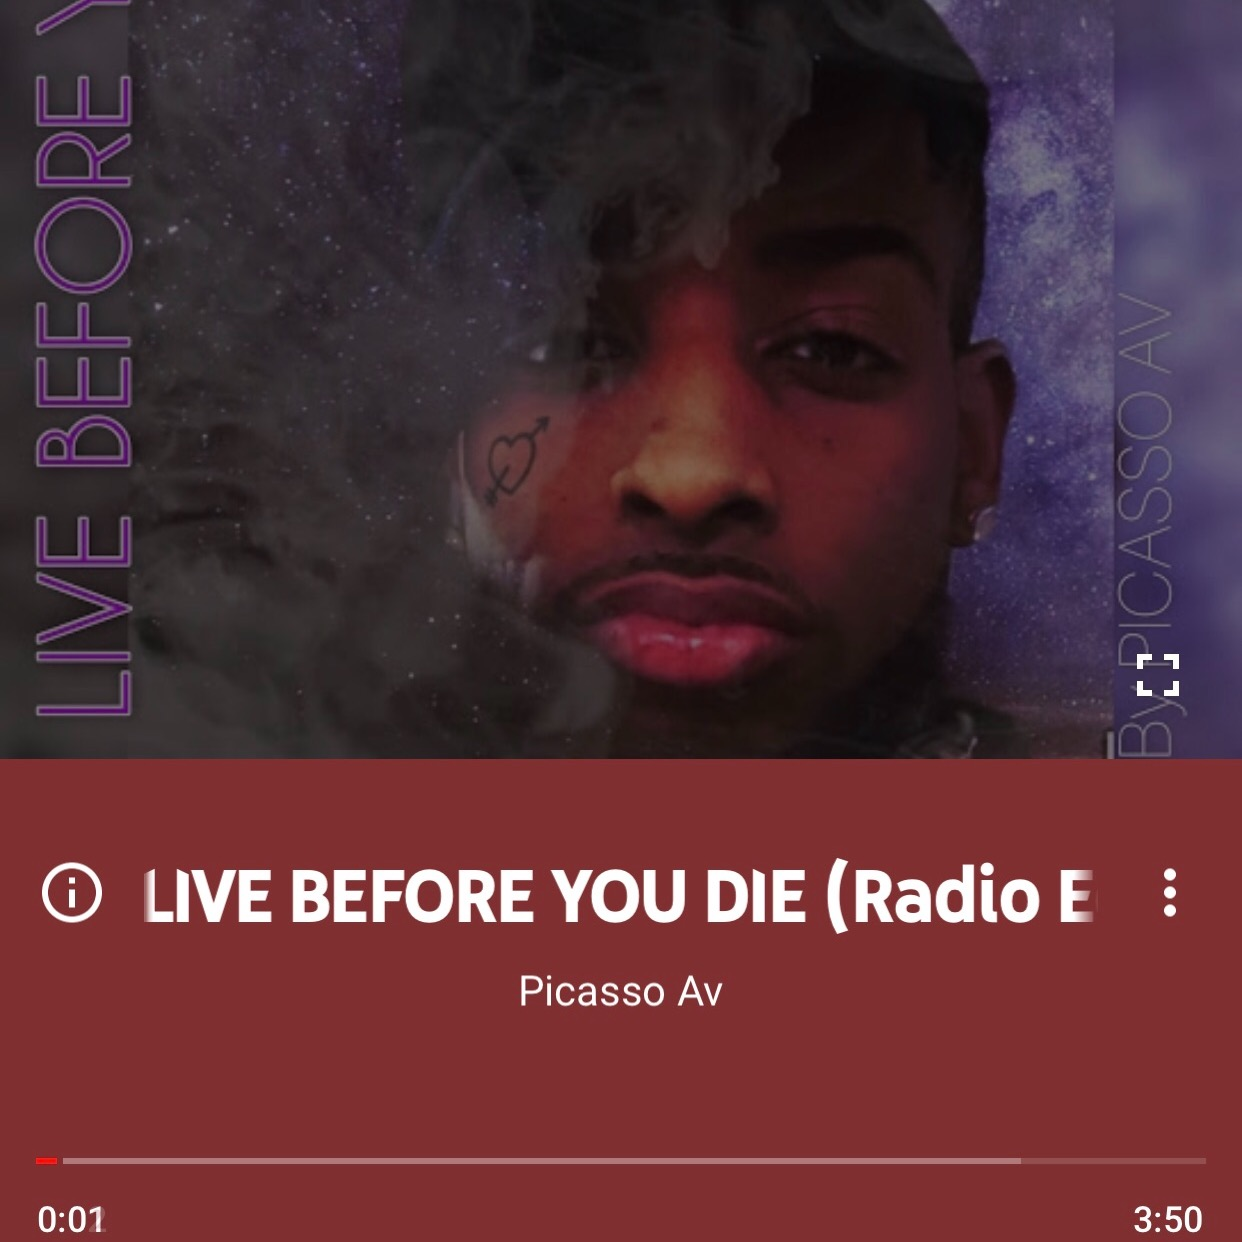 Live before you die YouTube music